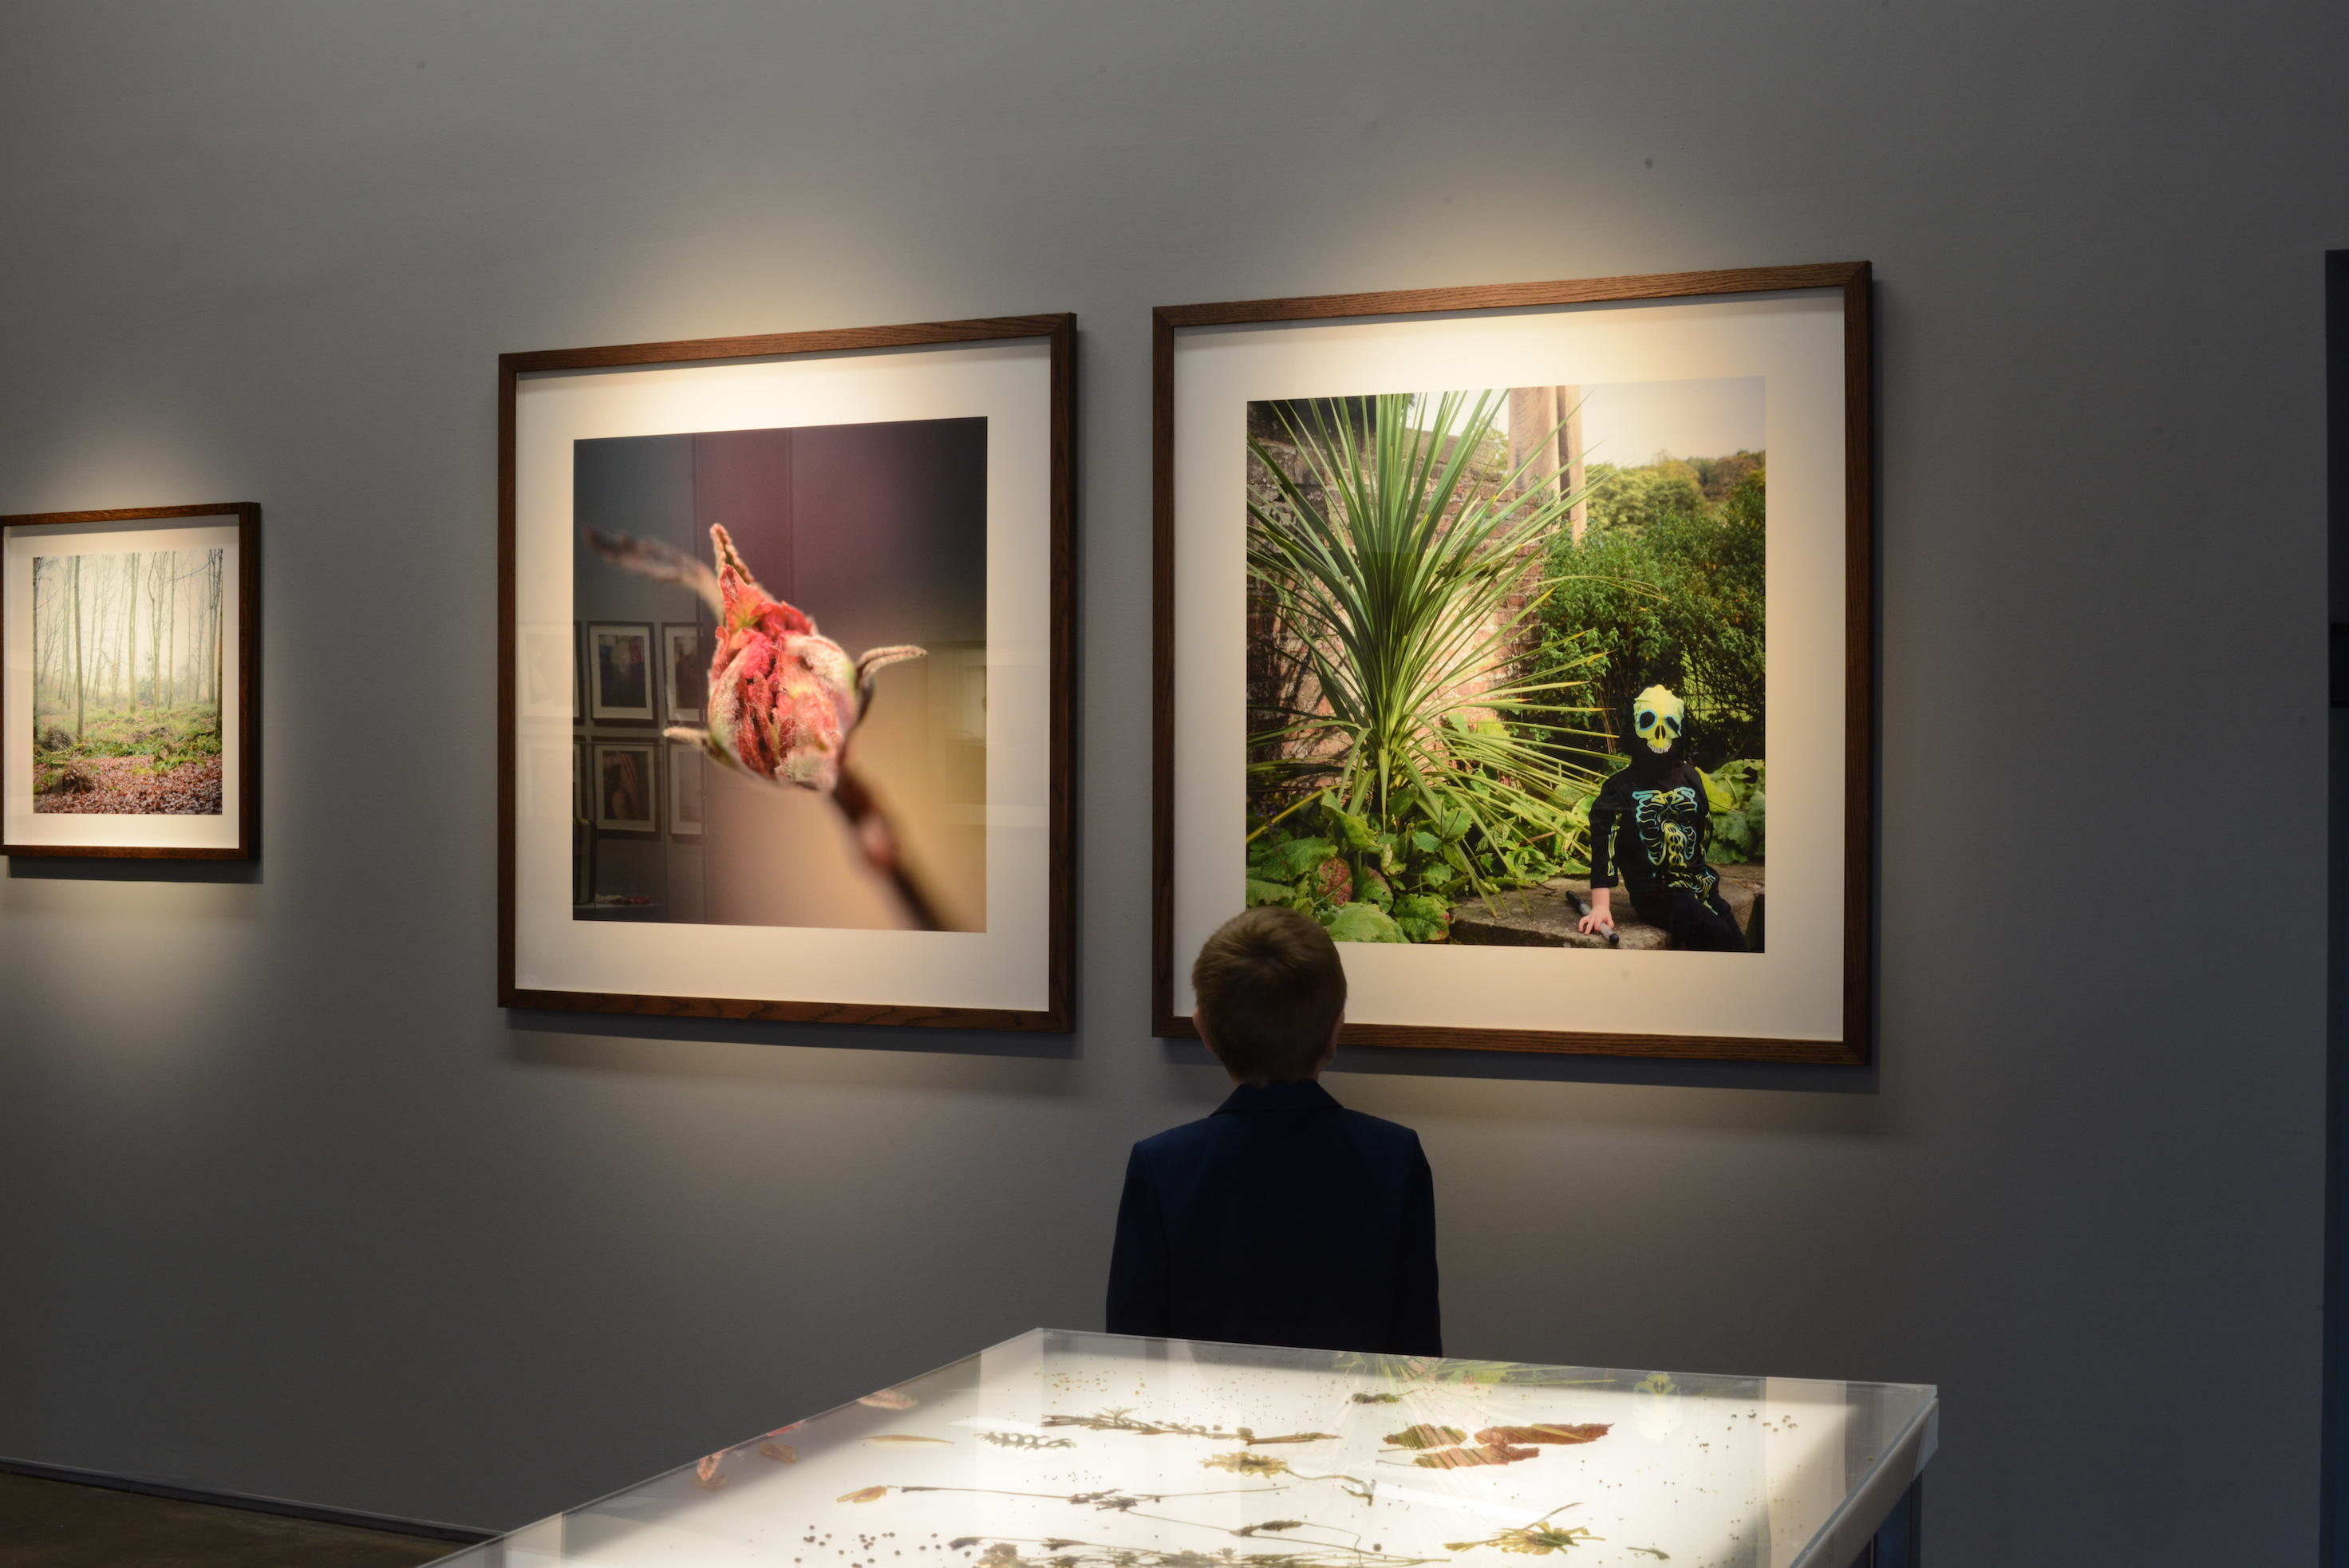 Little boy looking at two pictures on the wall